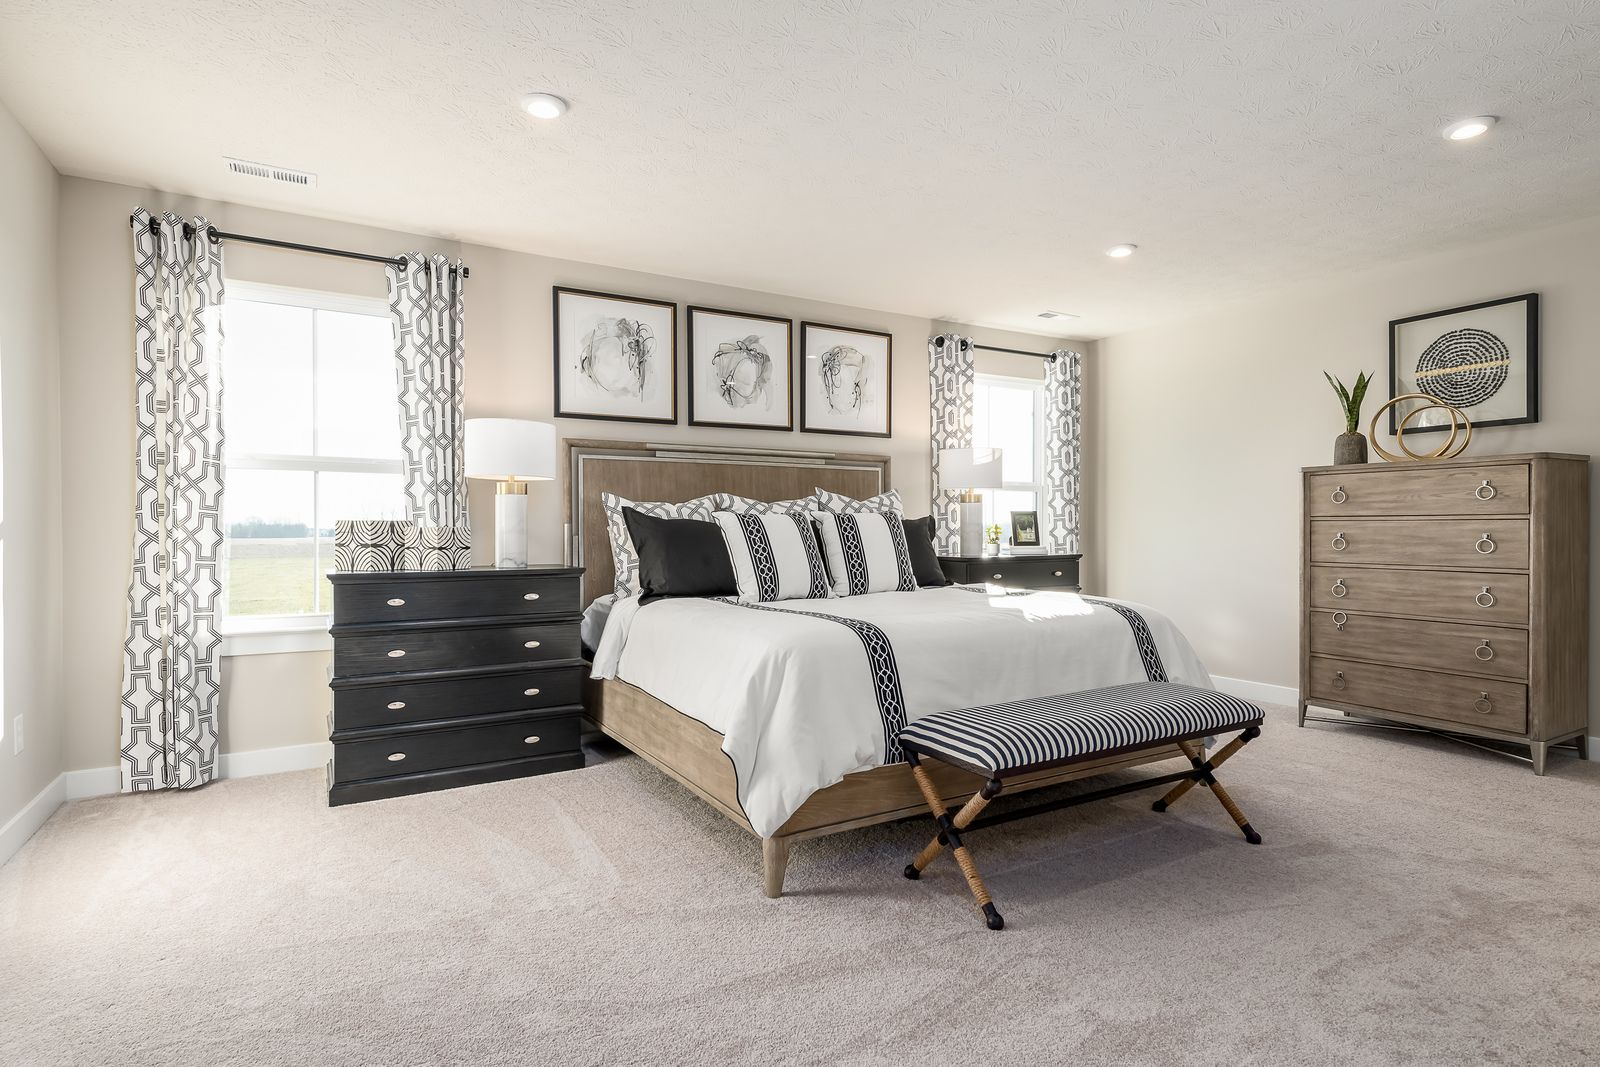 Bedroom featured in the Hudson 3 Car Garage By Ryan Homes in Baltimore, MD